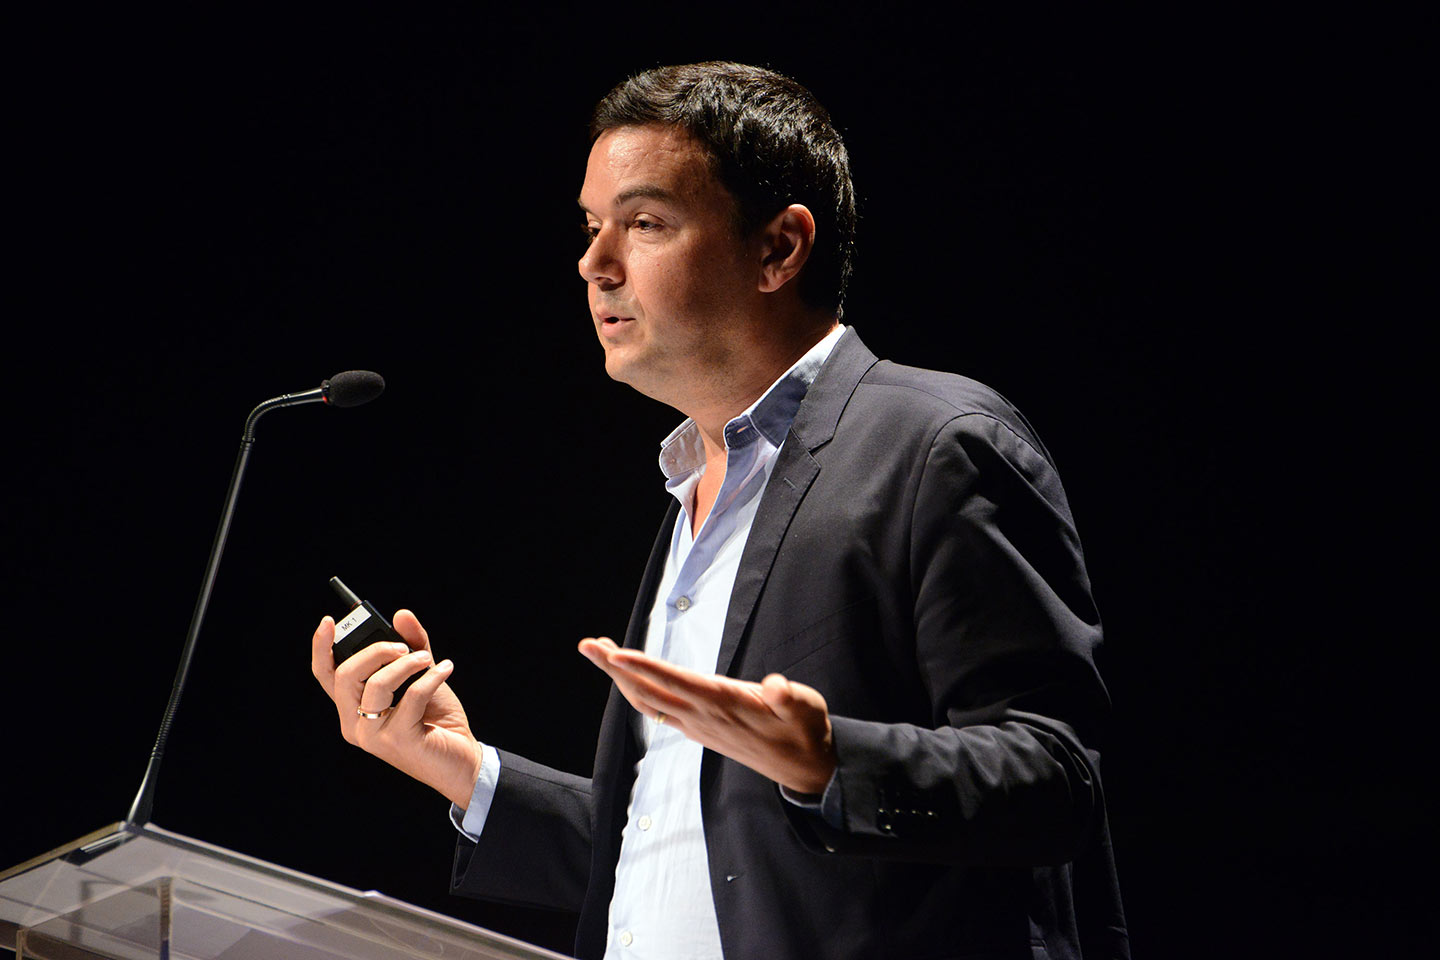 Thomas Piketty delivering a lecture